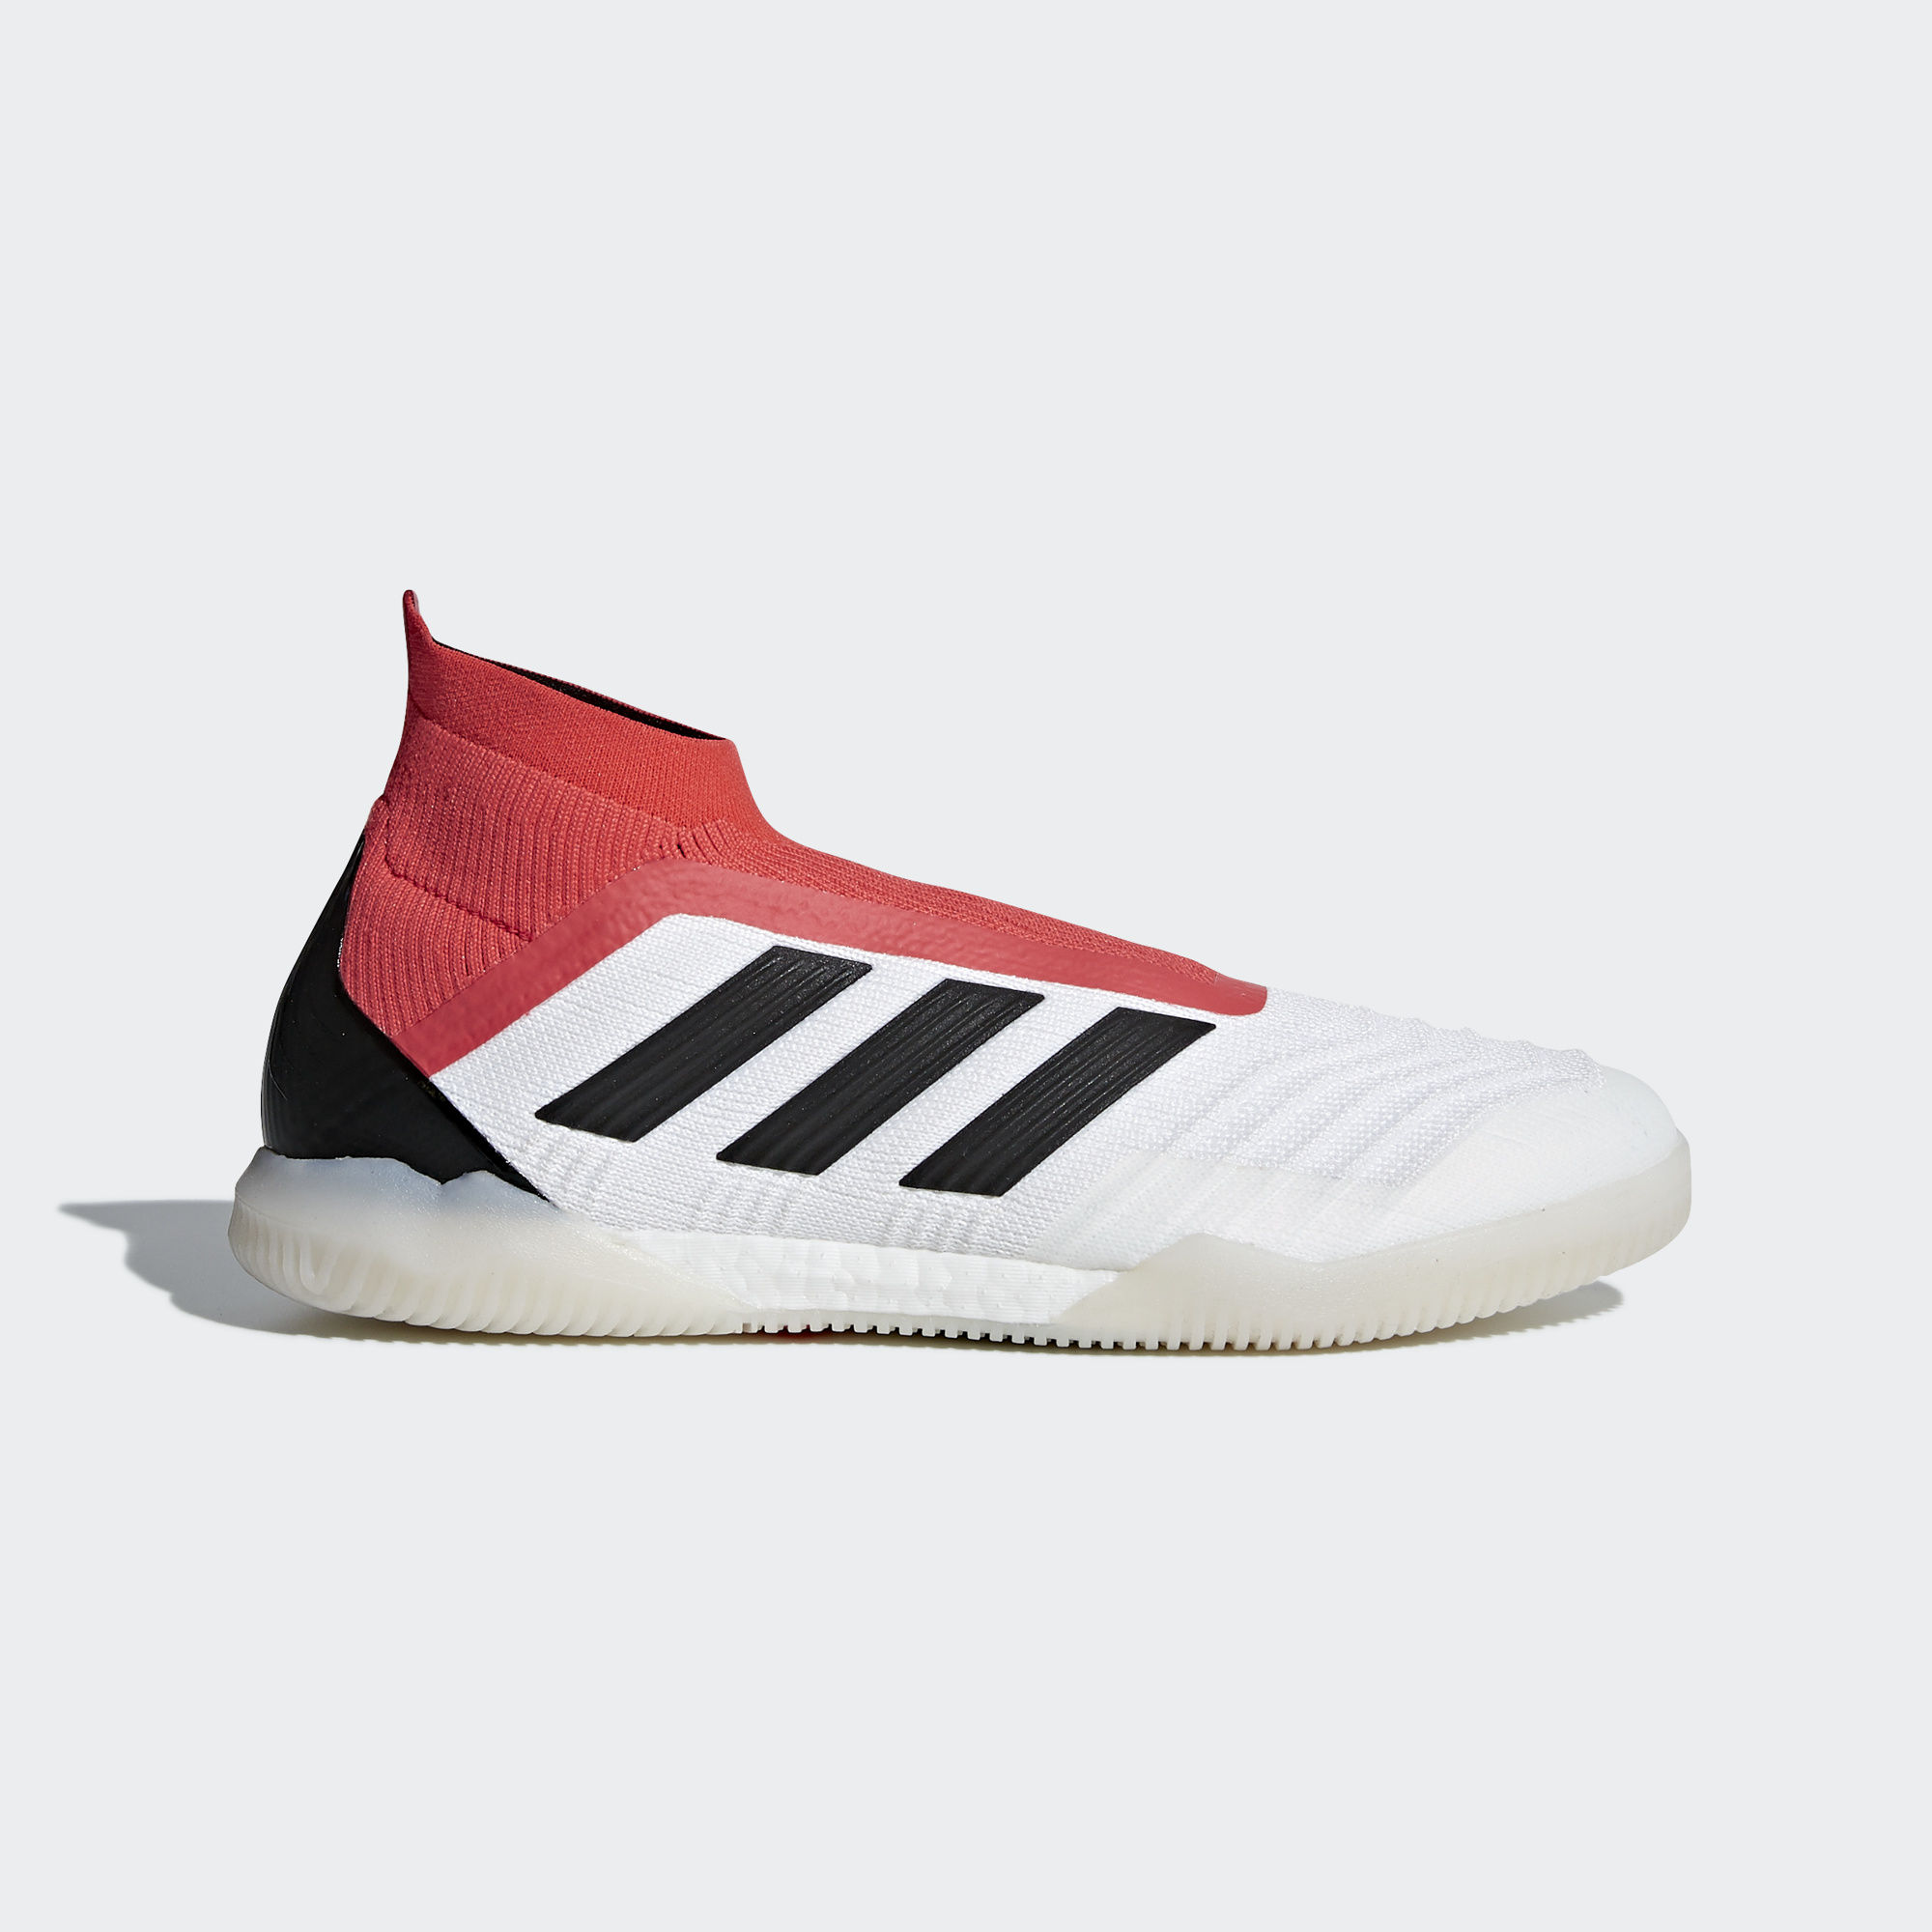 e824a58a842 adidas Predator Tango 18+ IC - White Black Red - Cold Blooded - Footwear